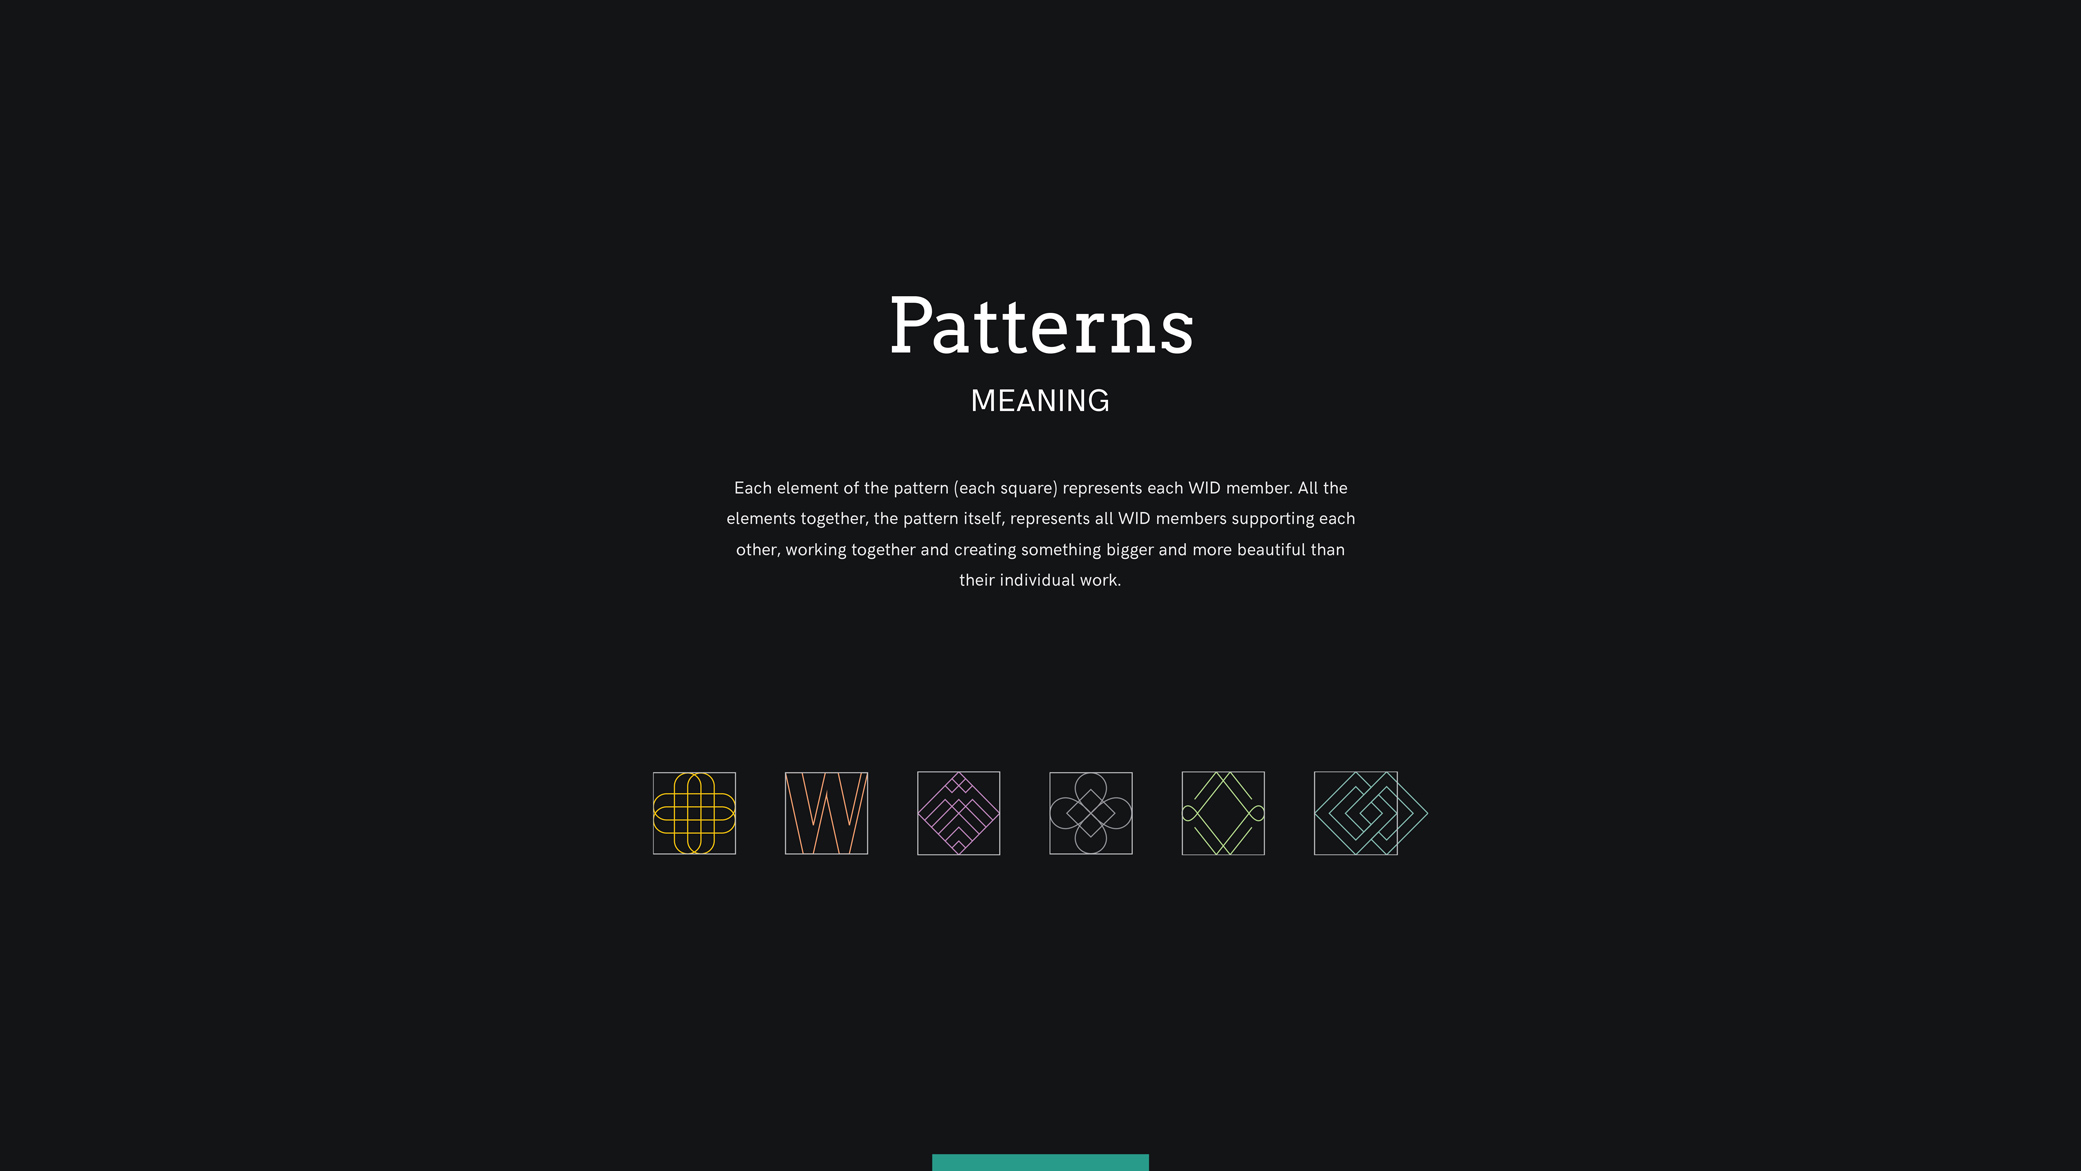 Women in Design brand presentation showcasing patterns and their meanings.